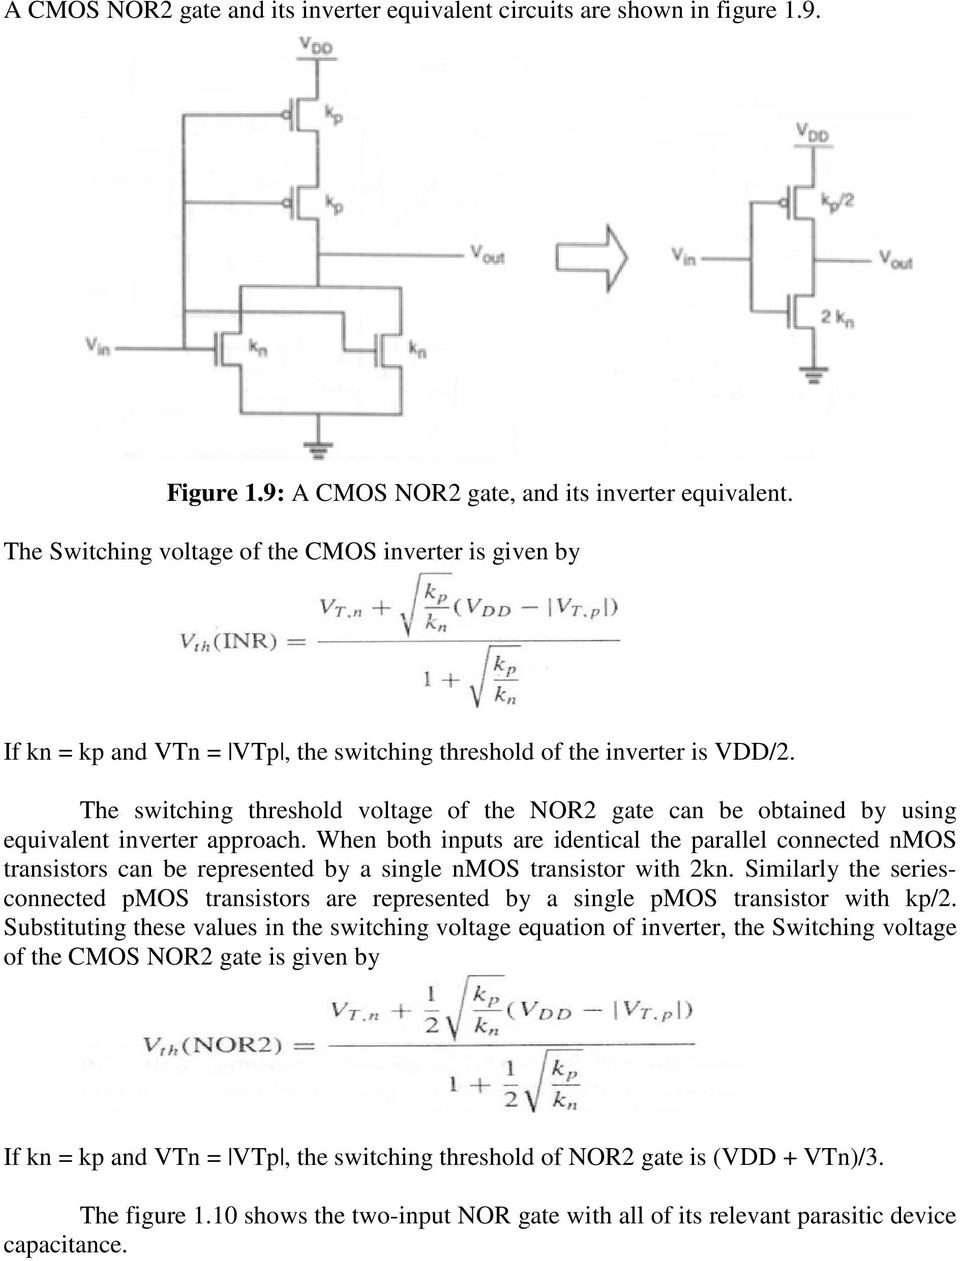 Unit 3 Basics Of Digital Cmos Design 1 Combinational Mos Logic Circuit Diagrams Electronic Circuits With Rc Timing The Switching Threshold Voltage Nor2 Gate Can Be Obtained By Using Equivalent Inverter Approach